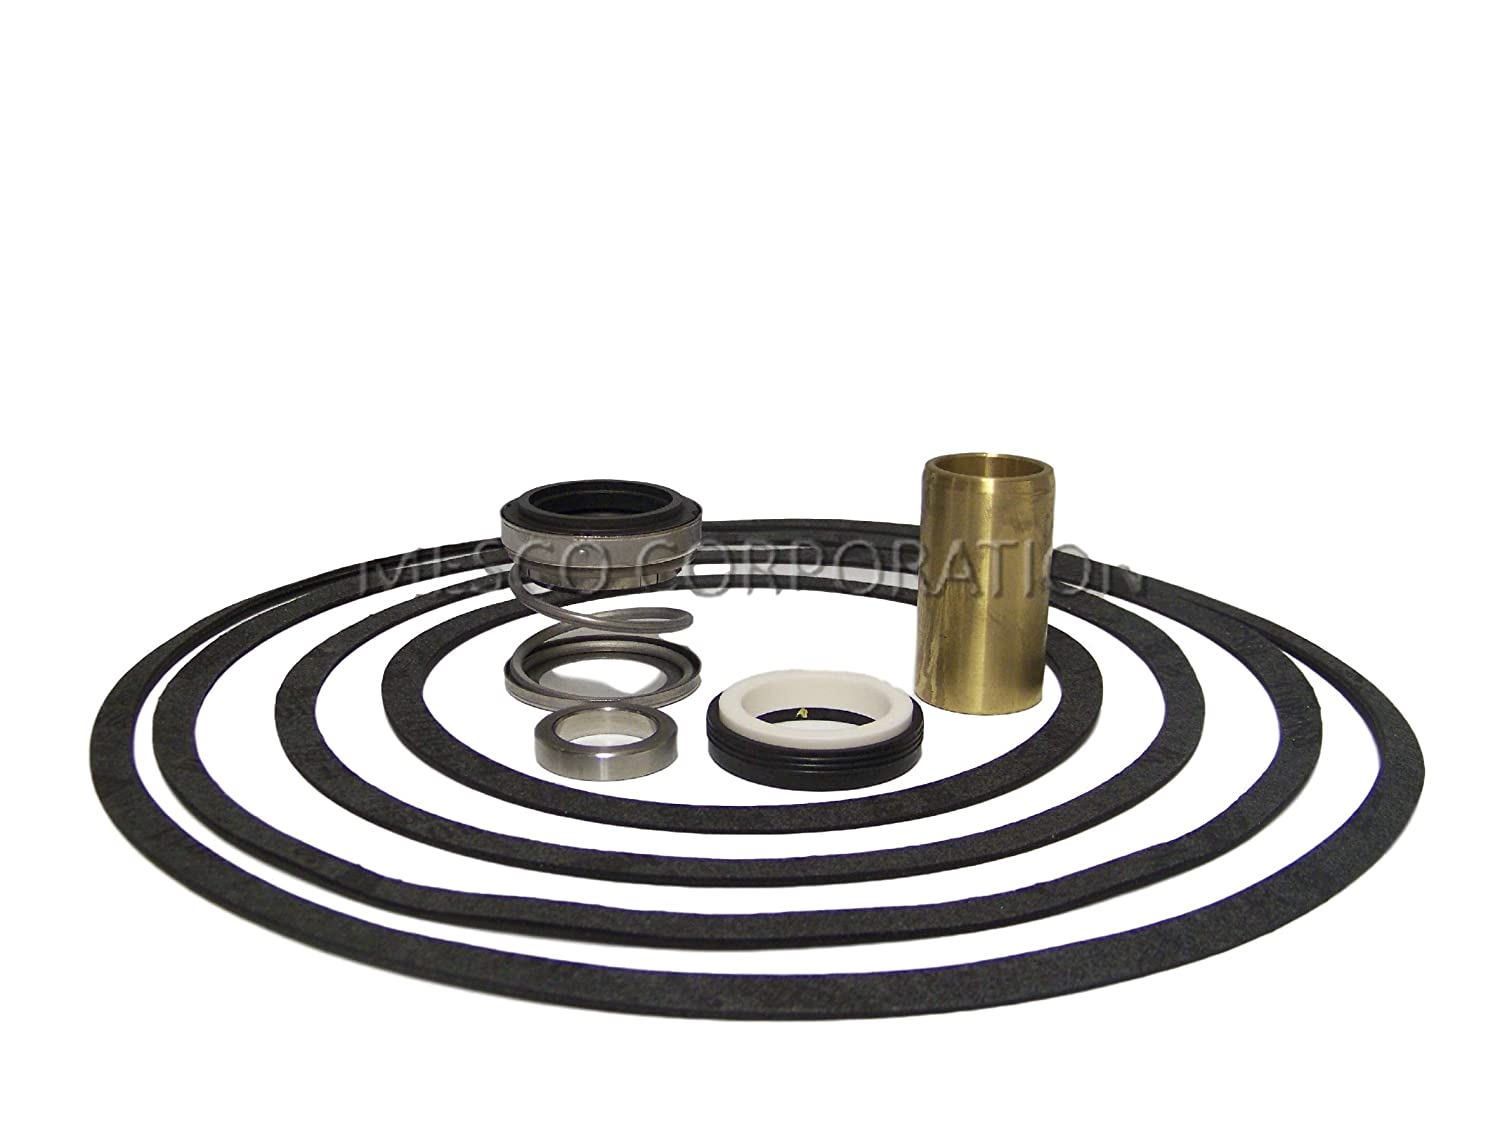 Mesco Corp Replacement kit for 1.25 Sales of SALE items from new works 4280 Models Armstrong 4380 2021 new